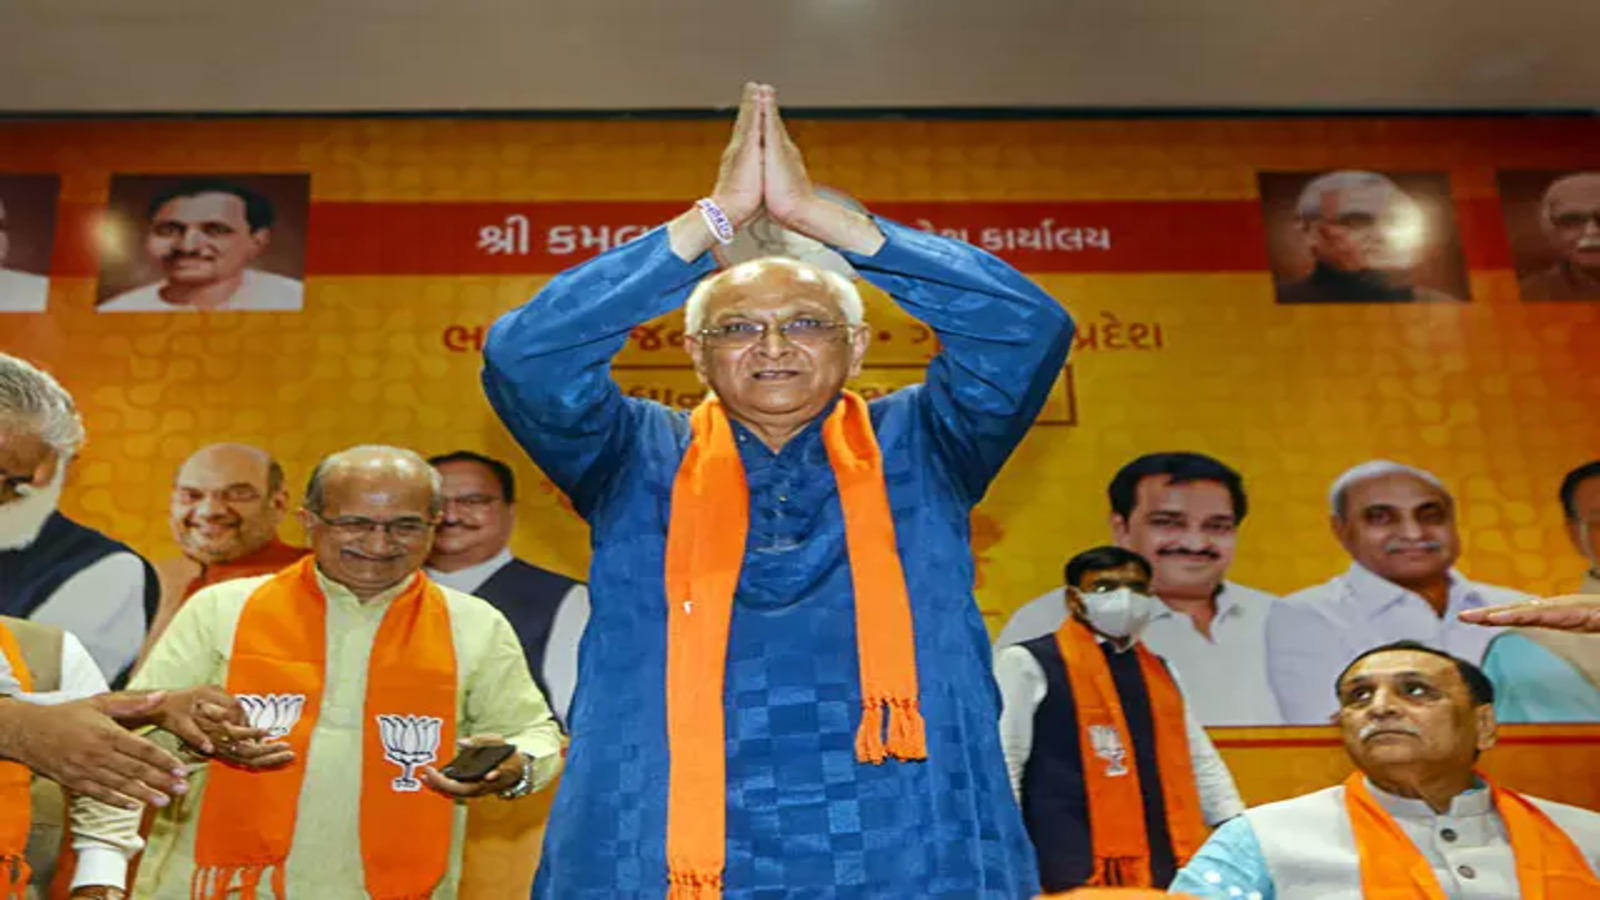 Bhupendra Patel sworn in as the 17th CM of Gujarat today, Amit Shah to attend ceremony